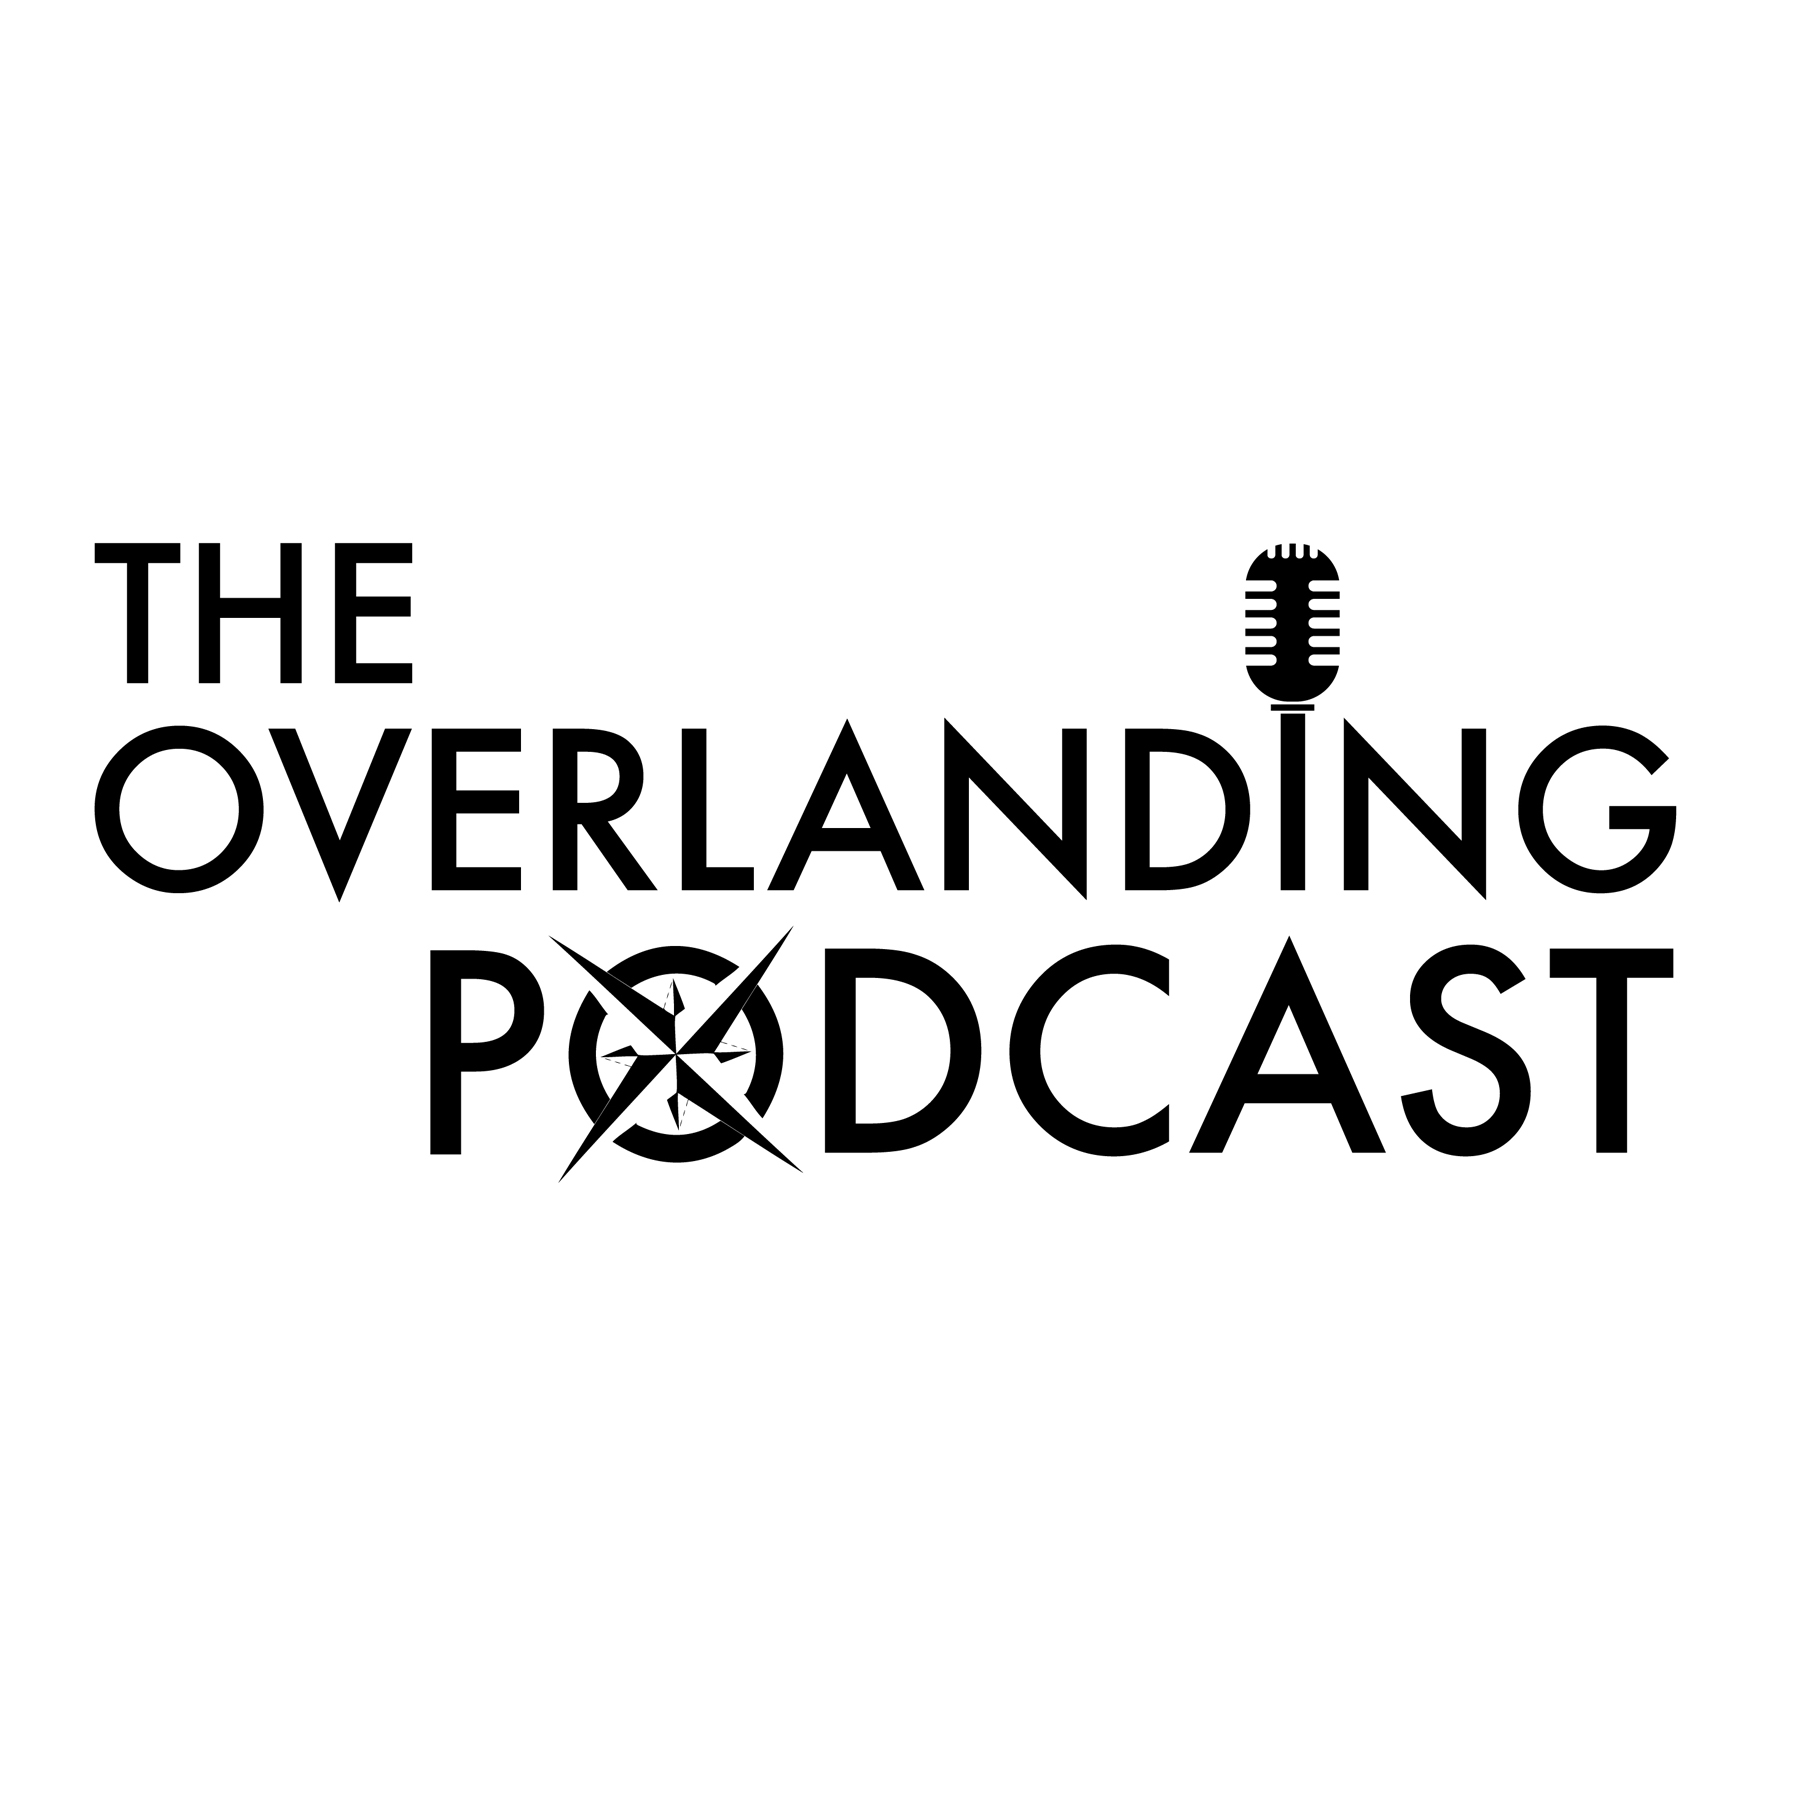 The Overlanding Podcast